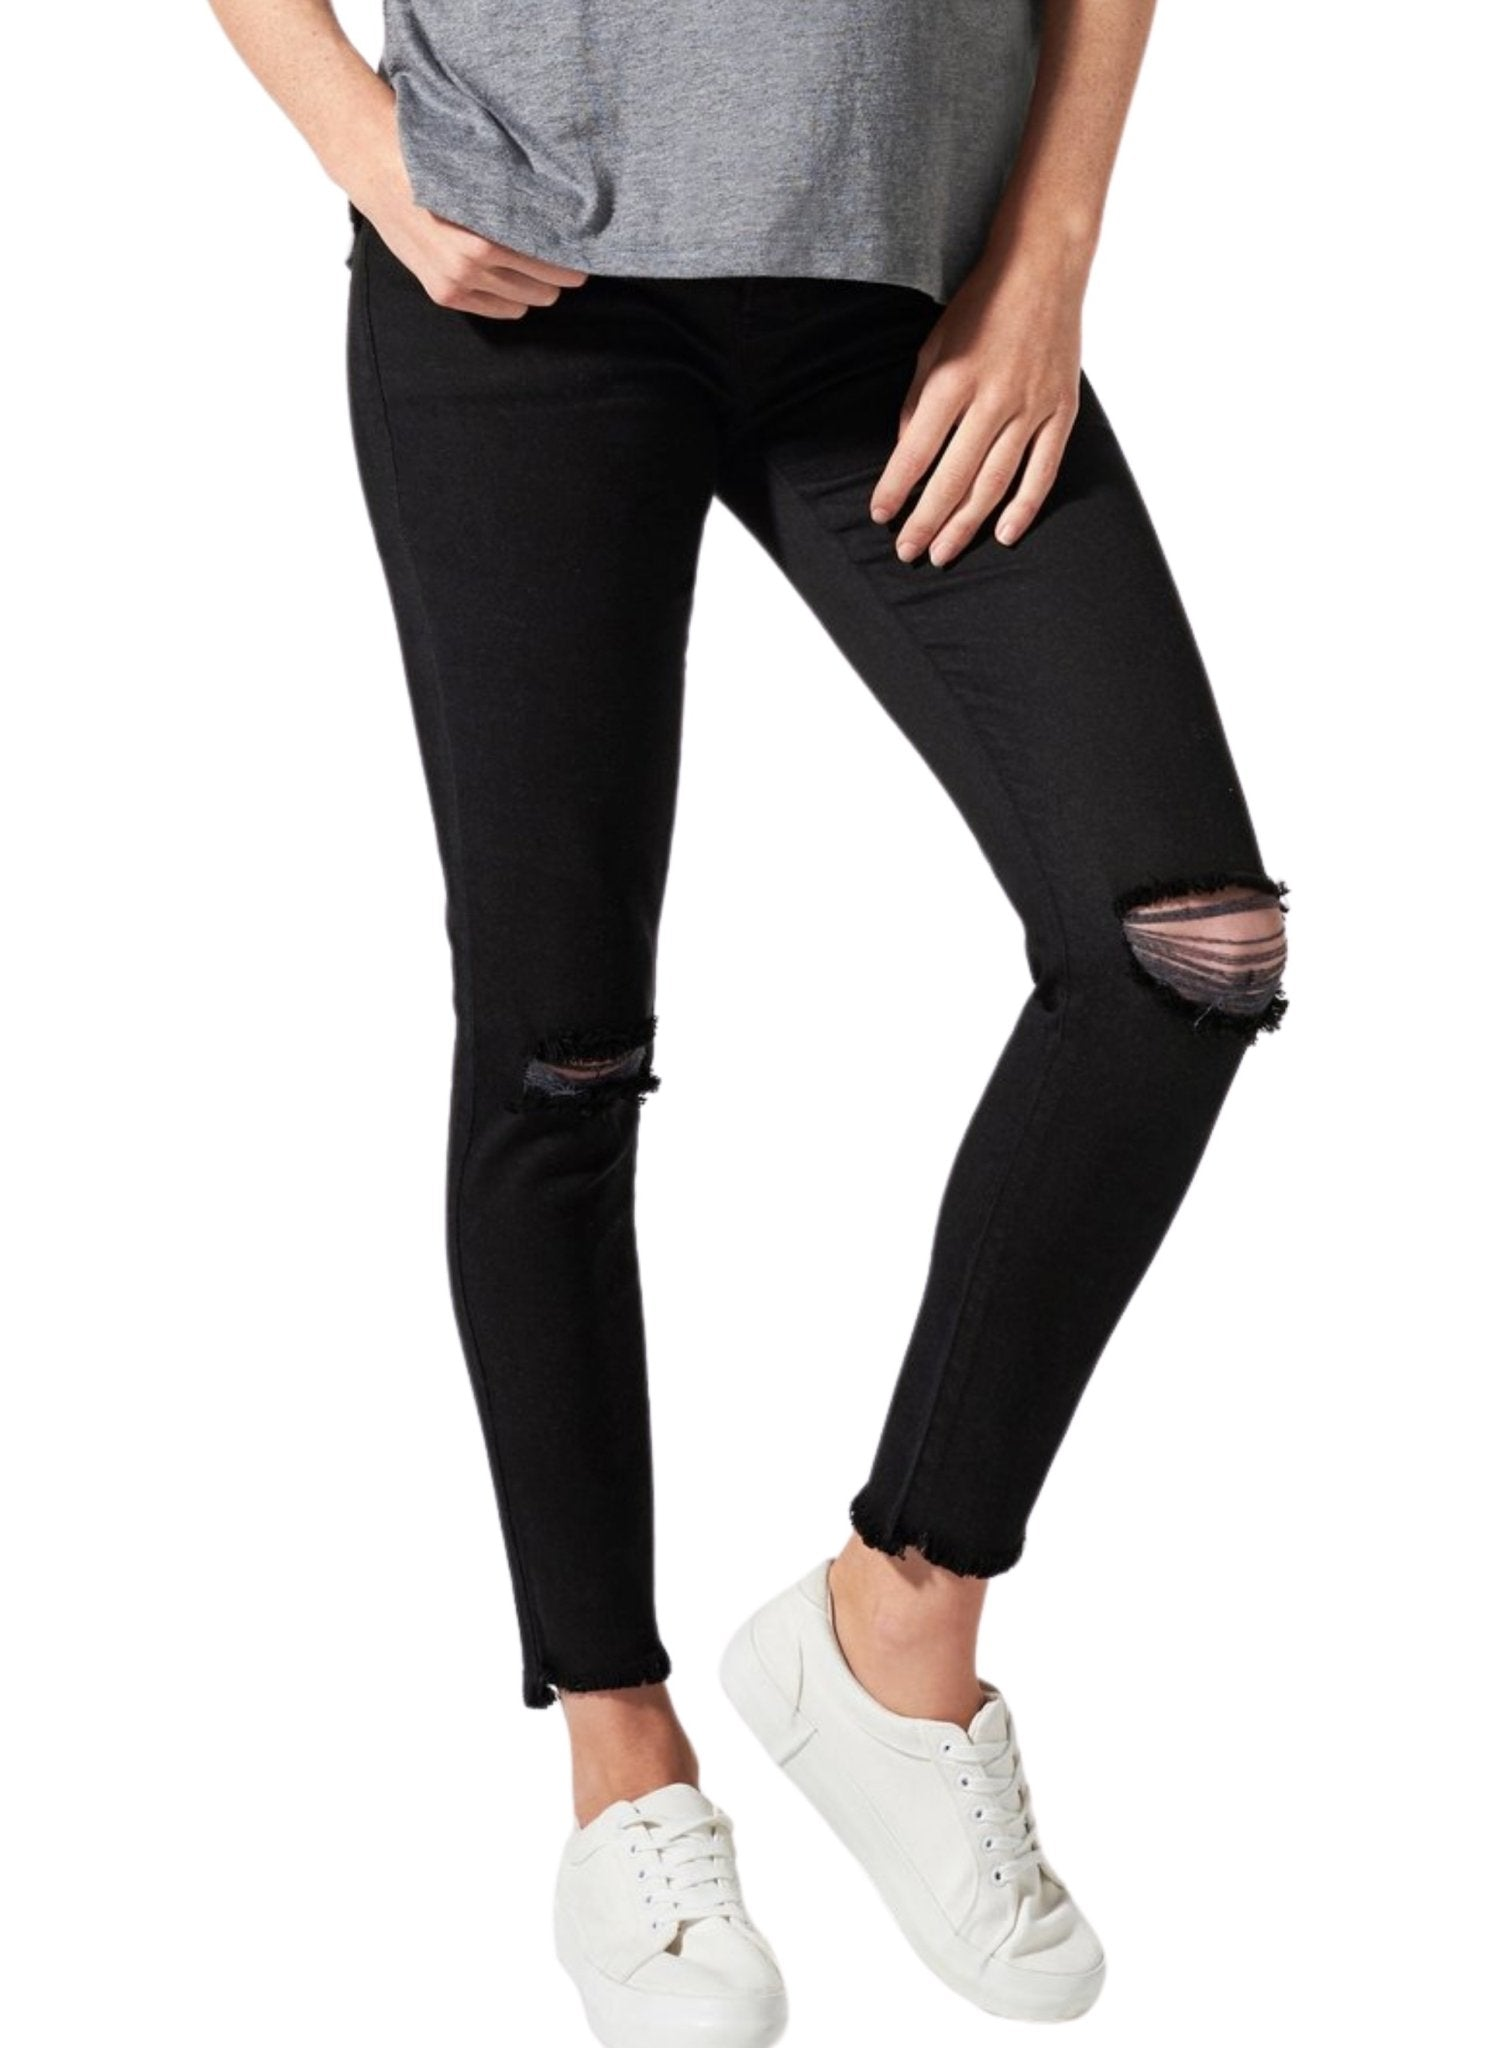 BLANQI Maternity Belly Support Skinny Jeans - Black Wash - Mums and Bumps